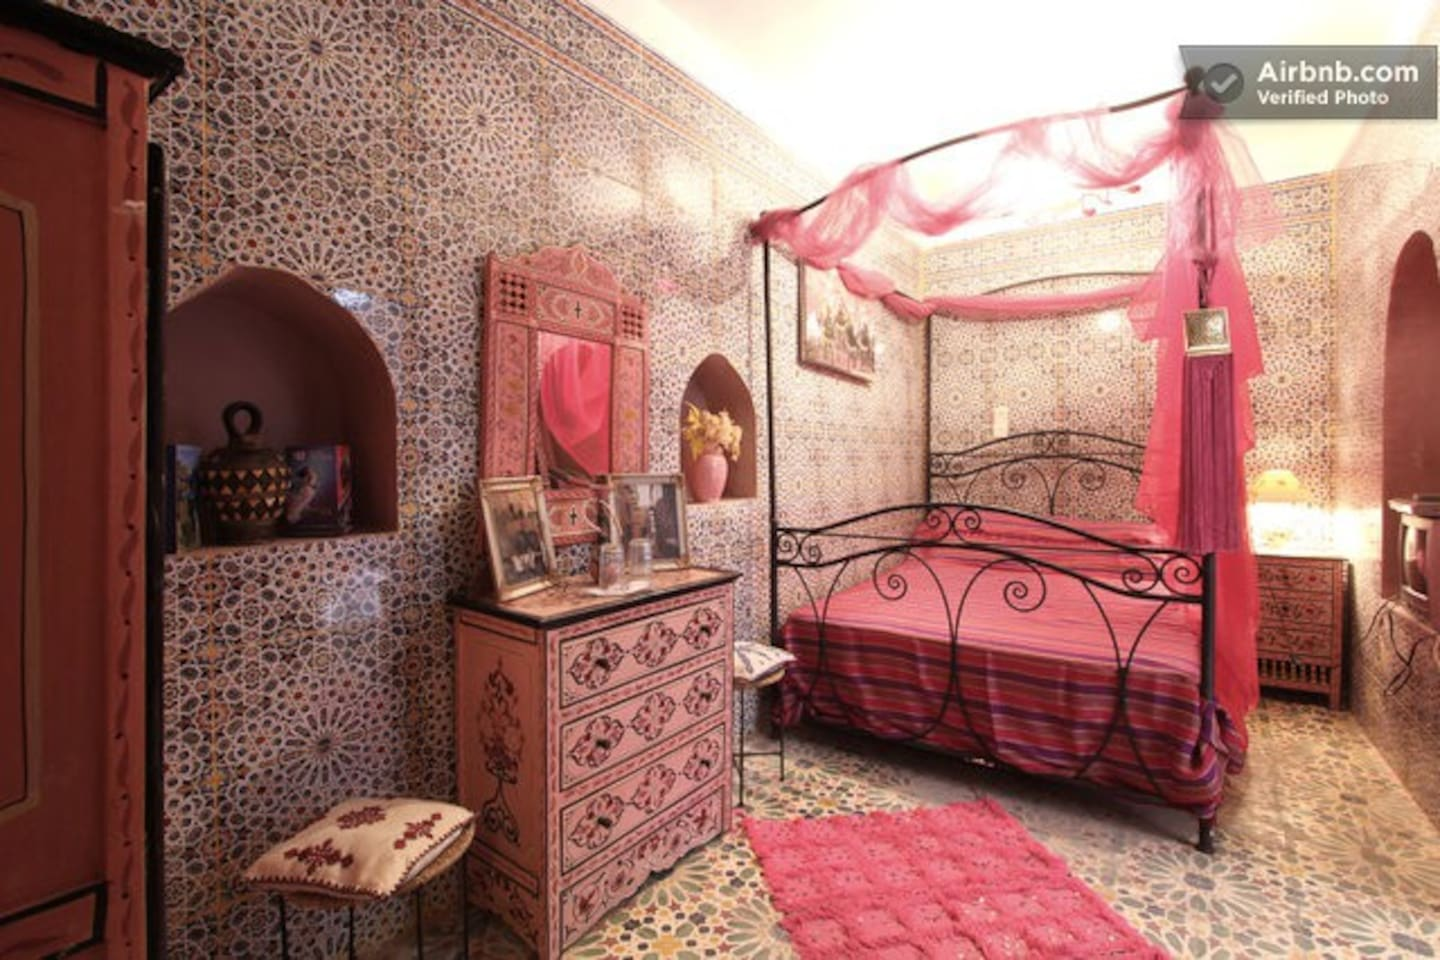 The pink room is the only bedroom at the bottom floor of the riad. It has a private bathroom.